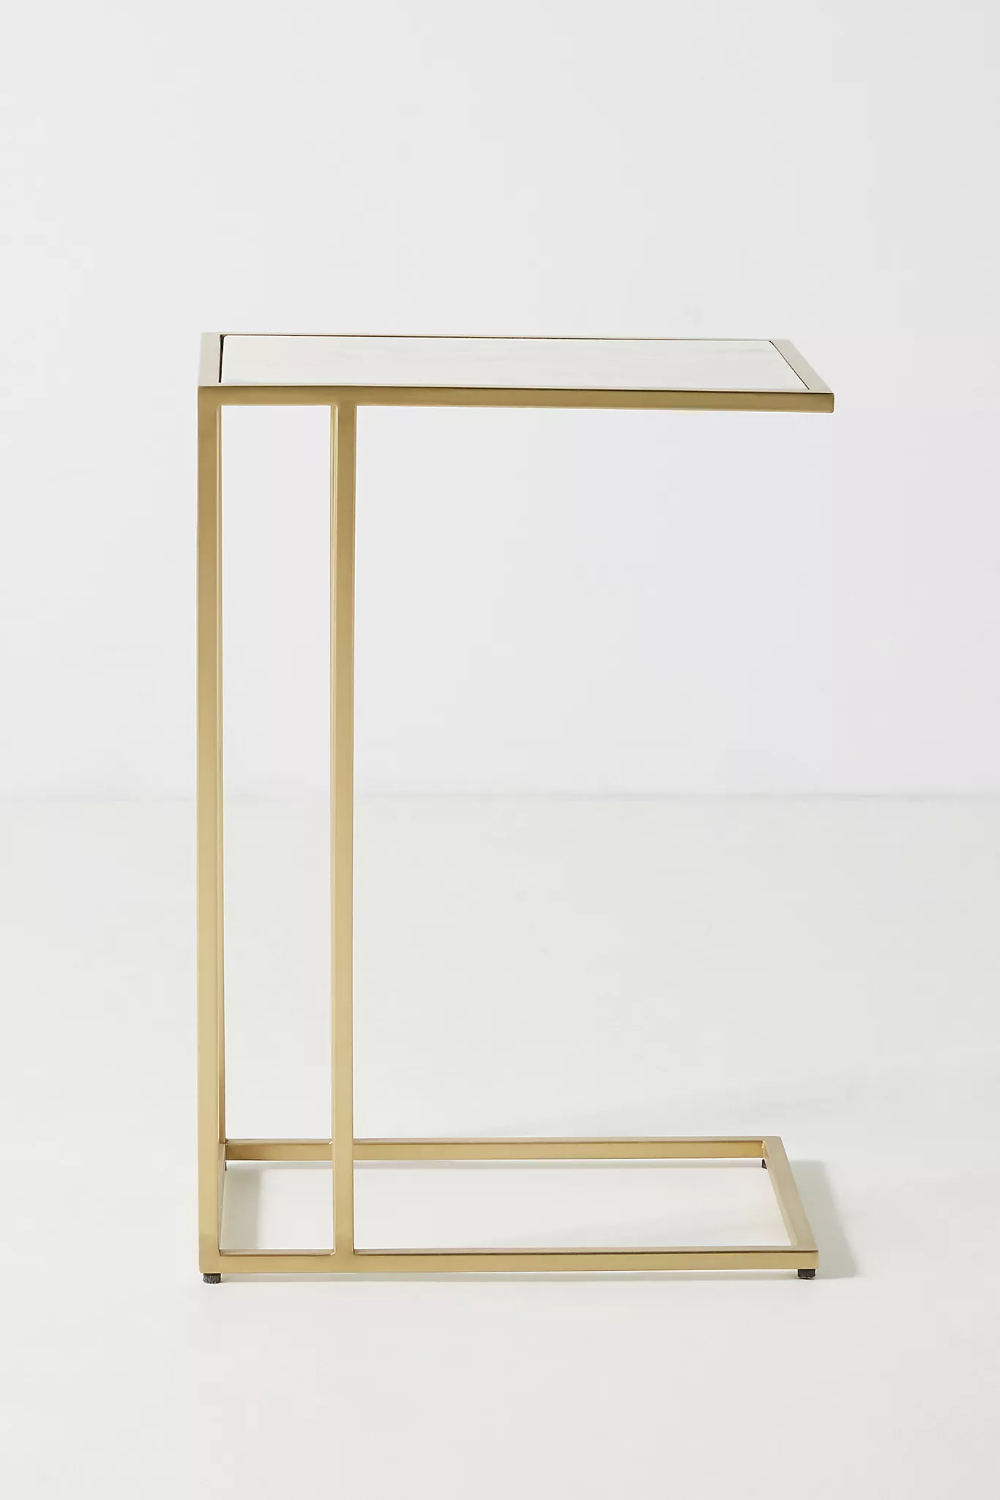 Charlize C Shaped Side Table Side Table Brass Side Table Stainless Steel Frame [ 1500 x 1000 Pixel ]